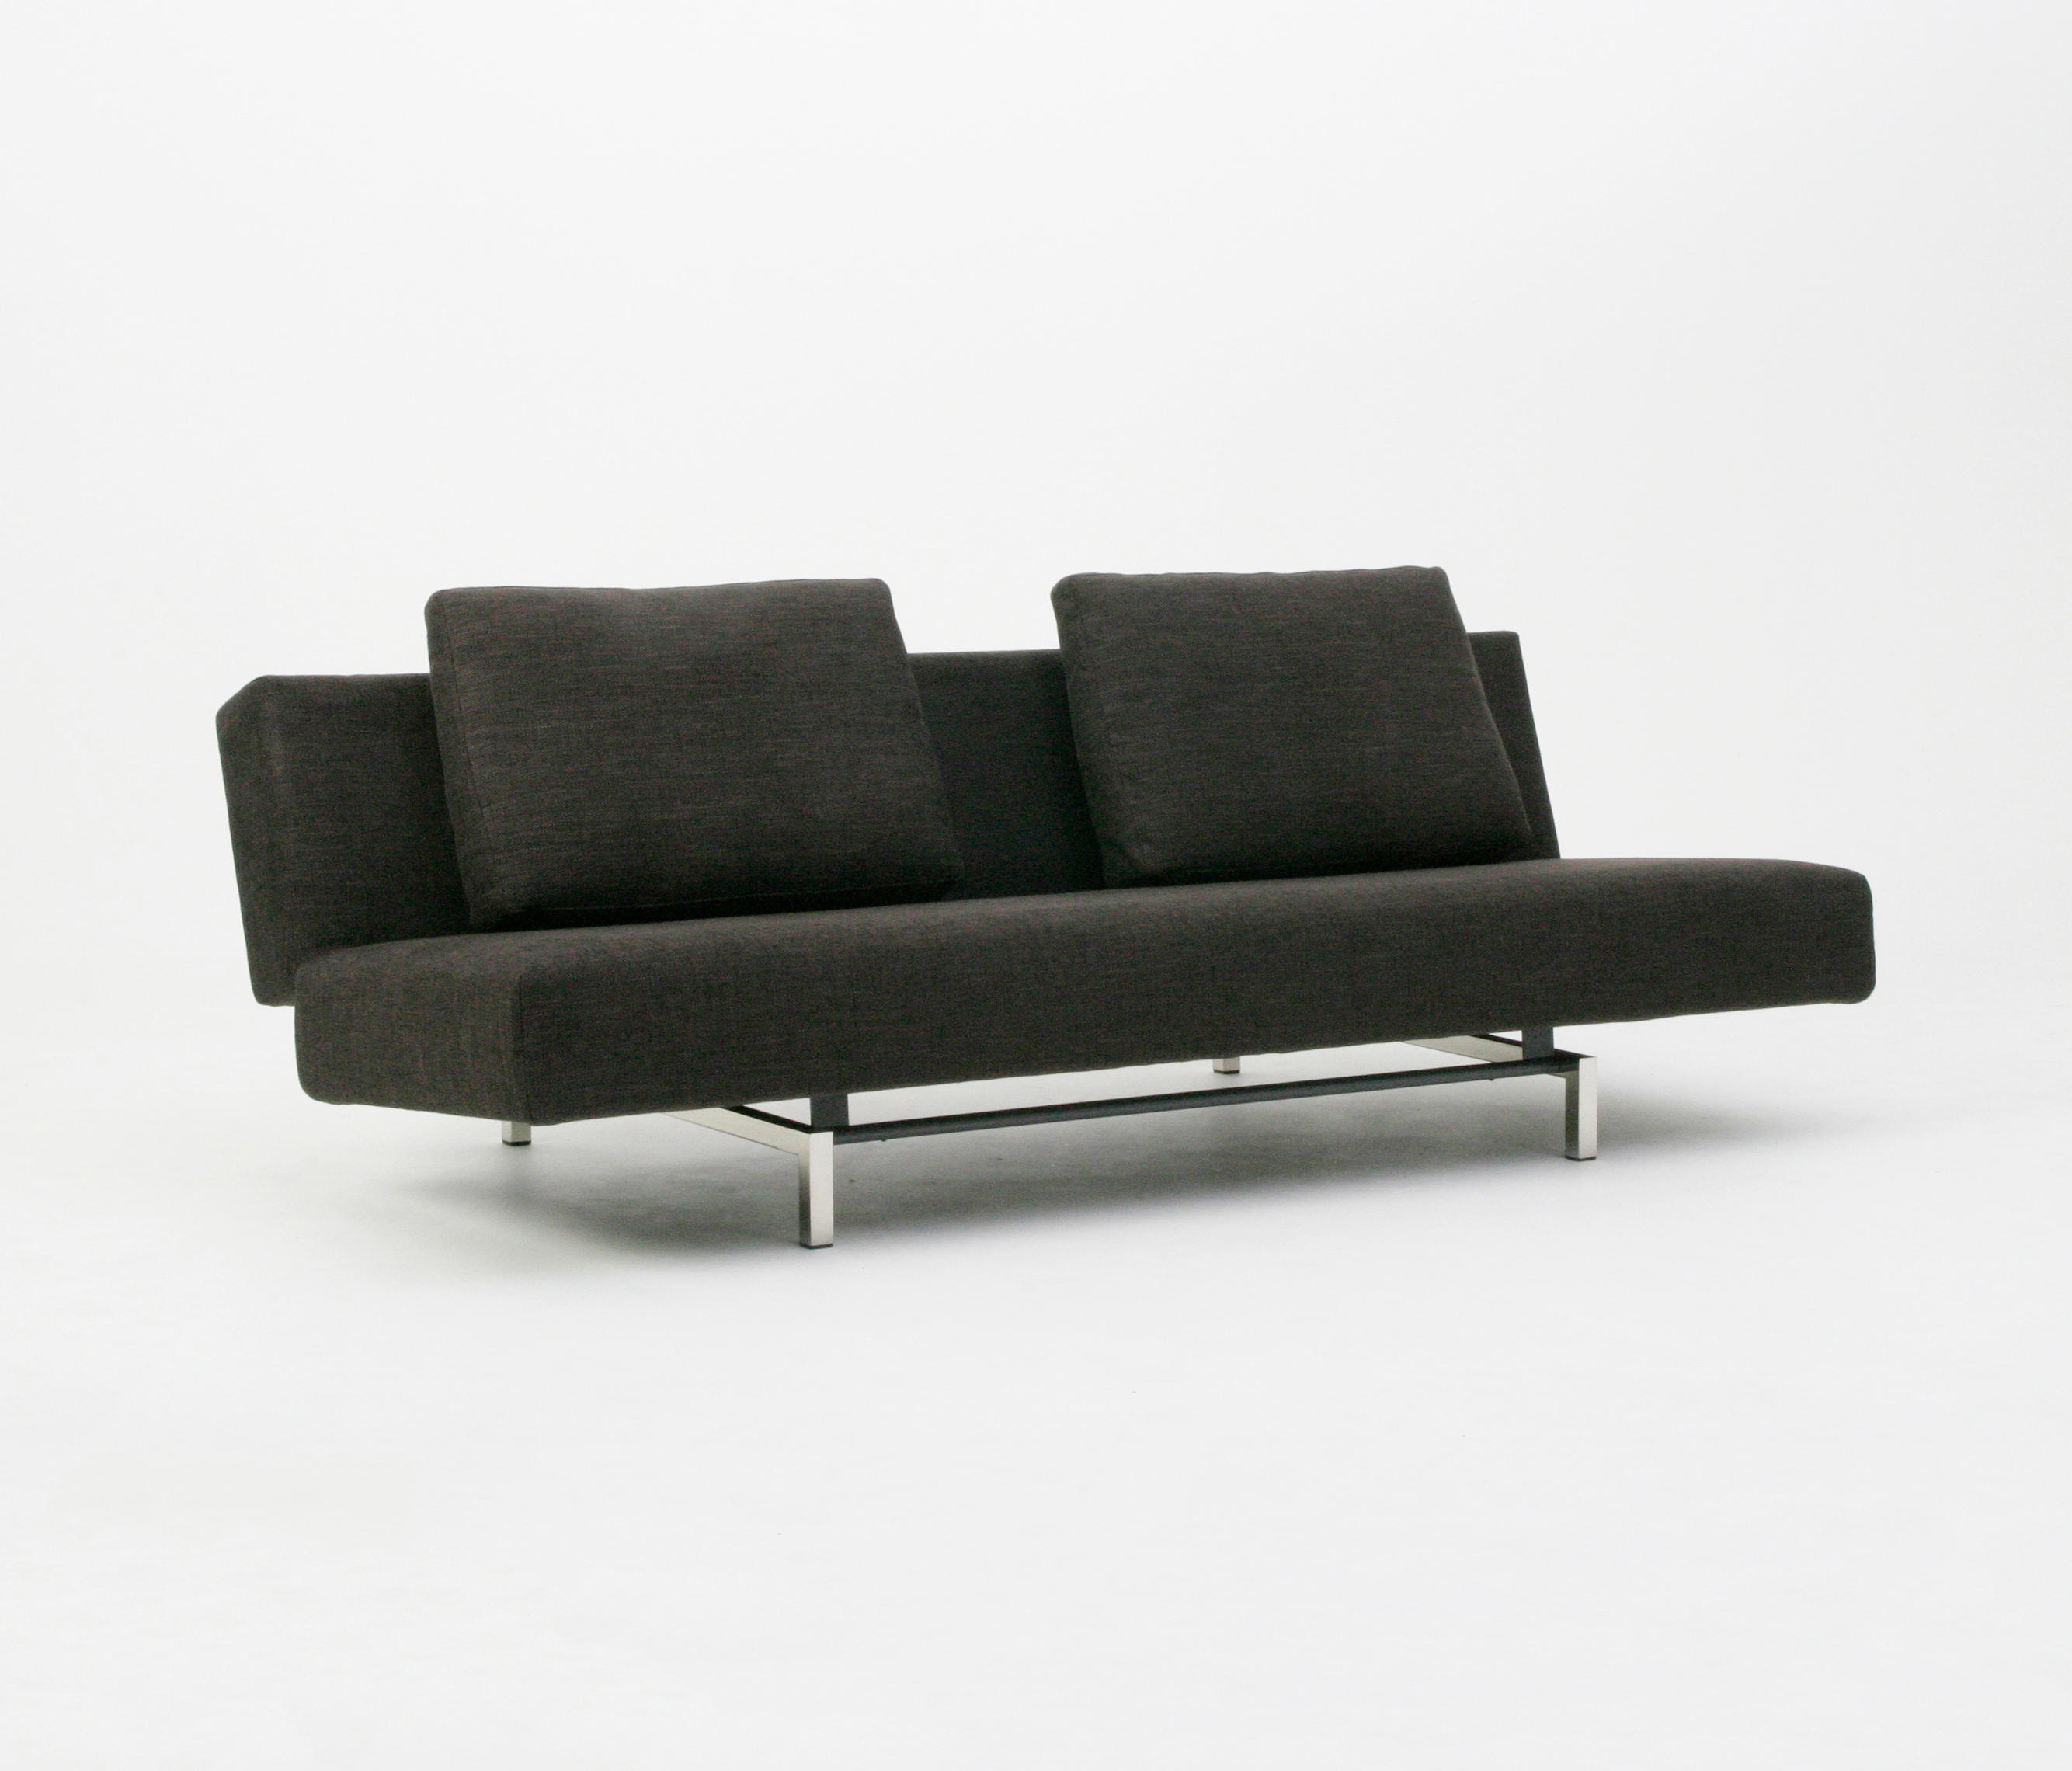 SLEEPER - Sofas von Bensen | Architonic